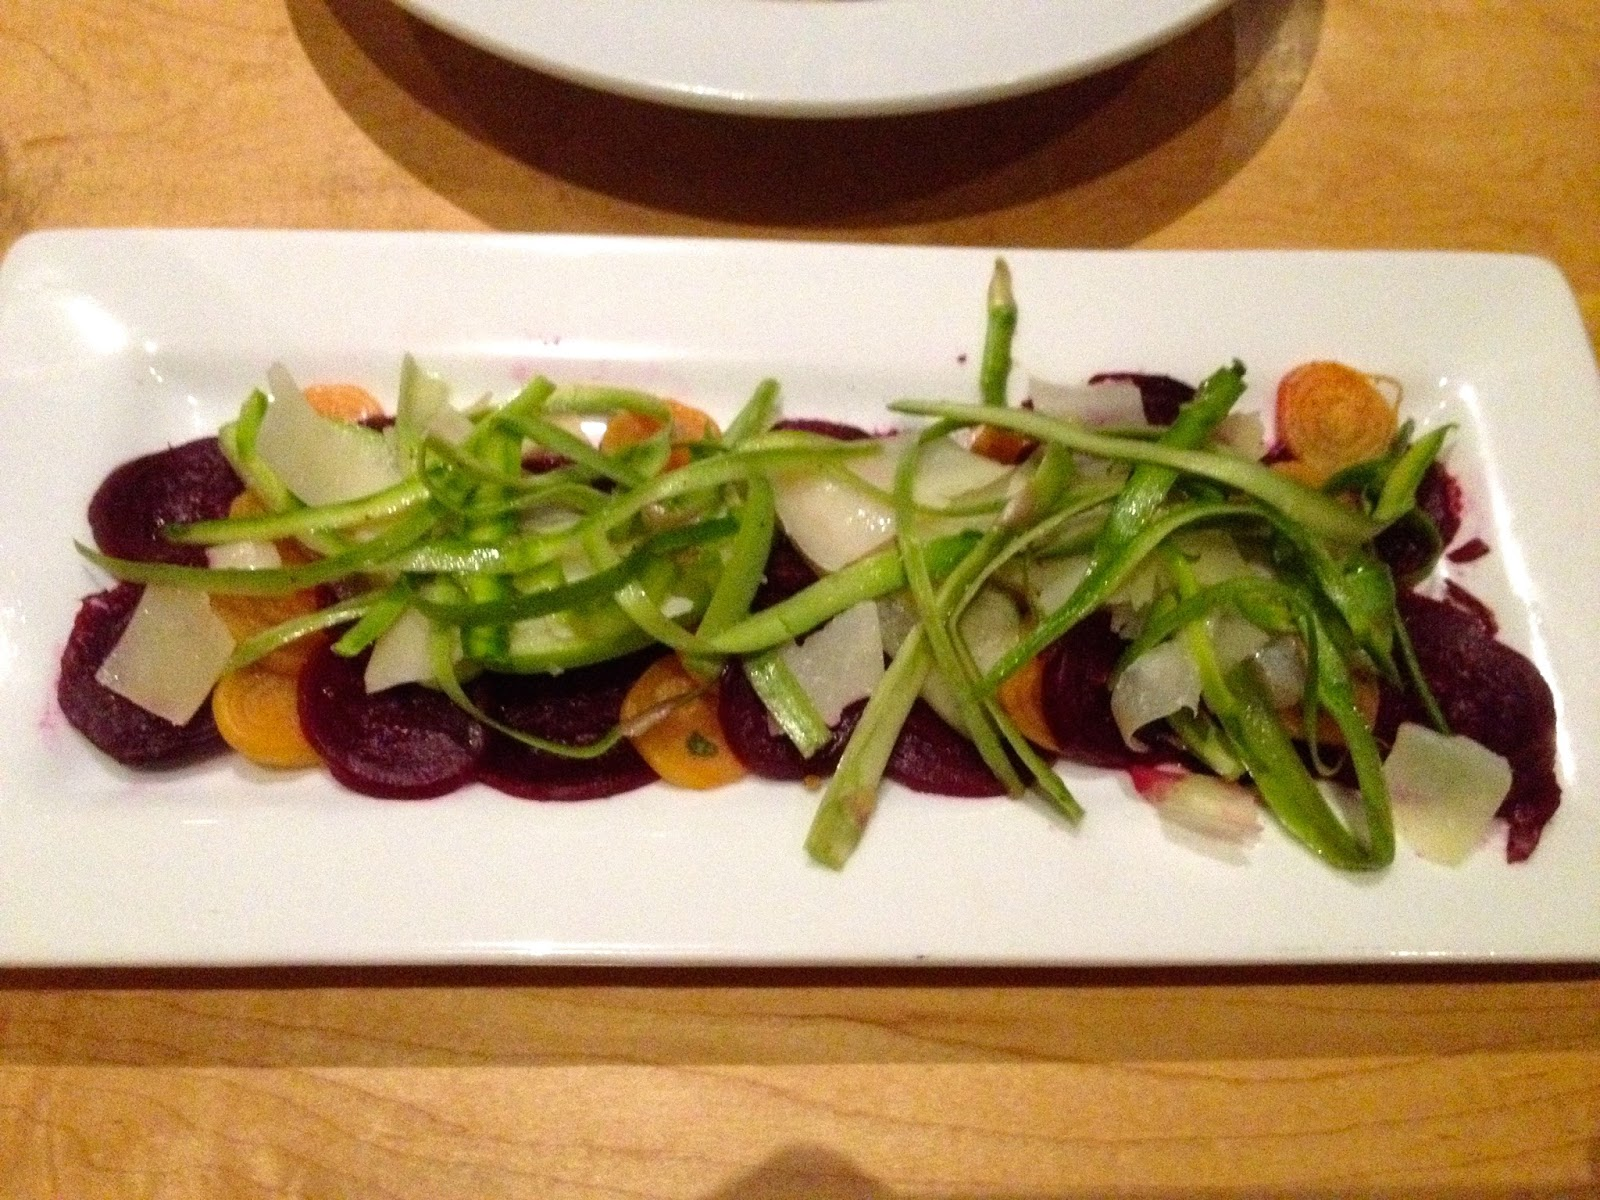 Beet Salad at the Peasantry